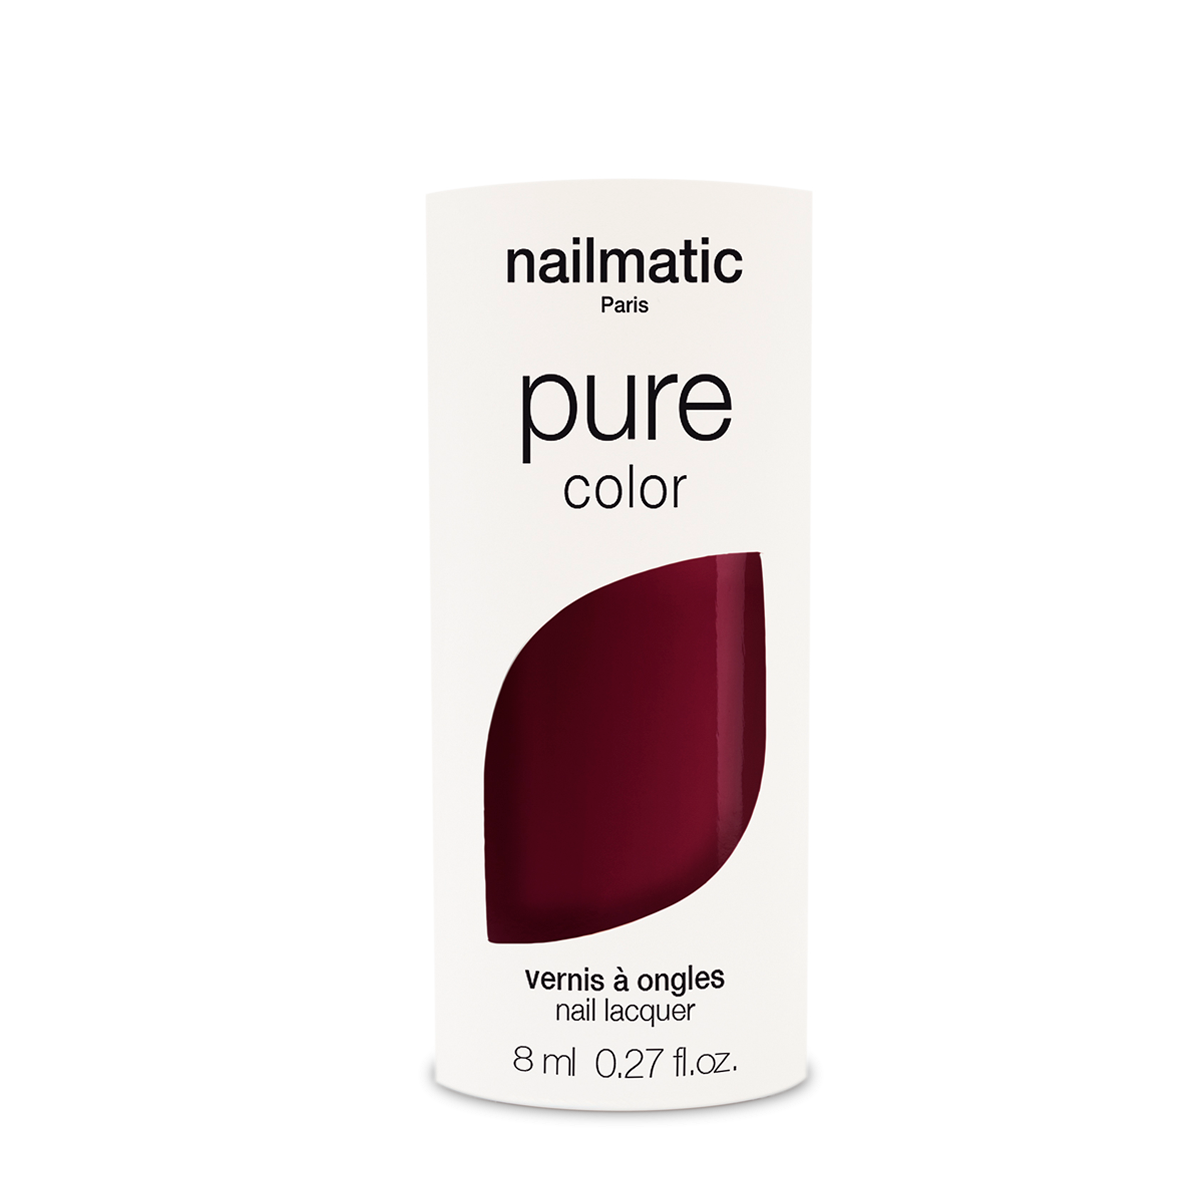 nailmatic - PURE Color